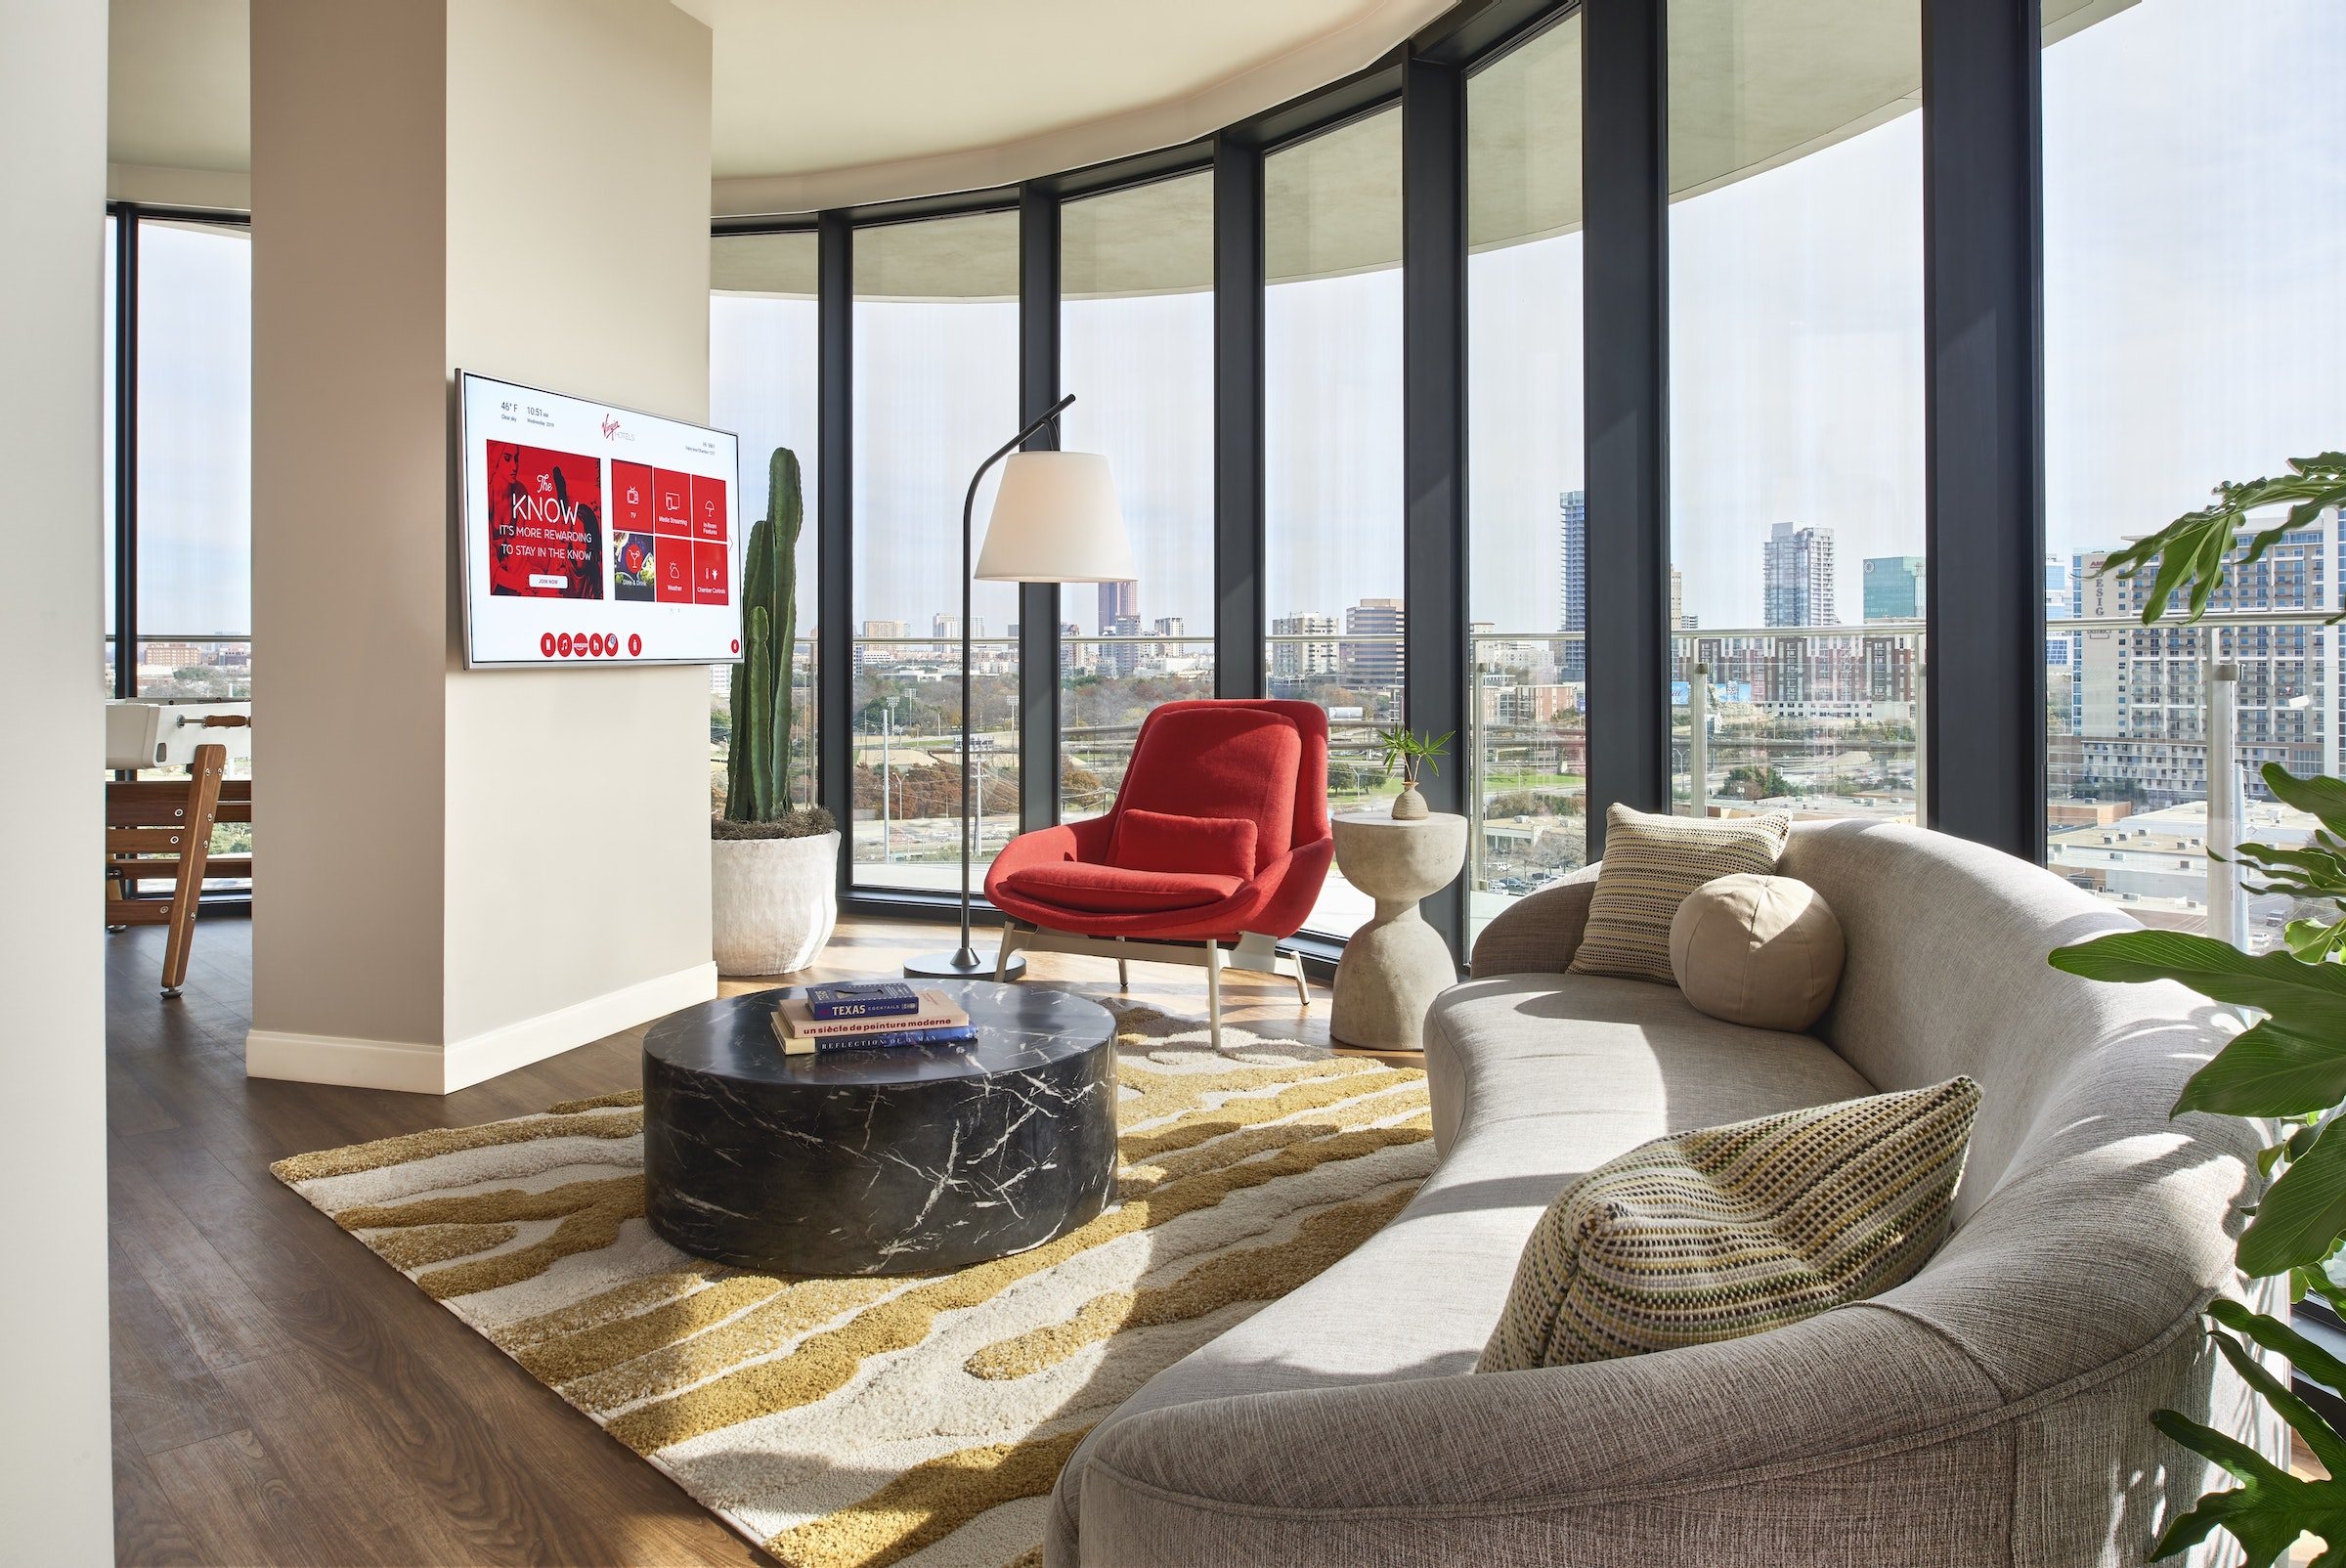 Virgin Hotels Dallas in Beyond Dallas